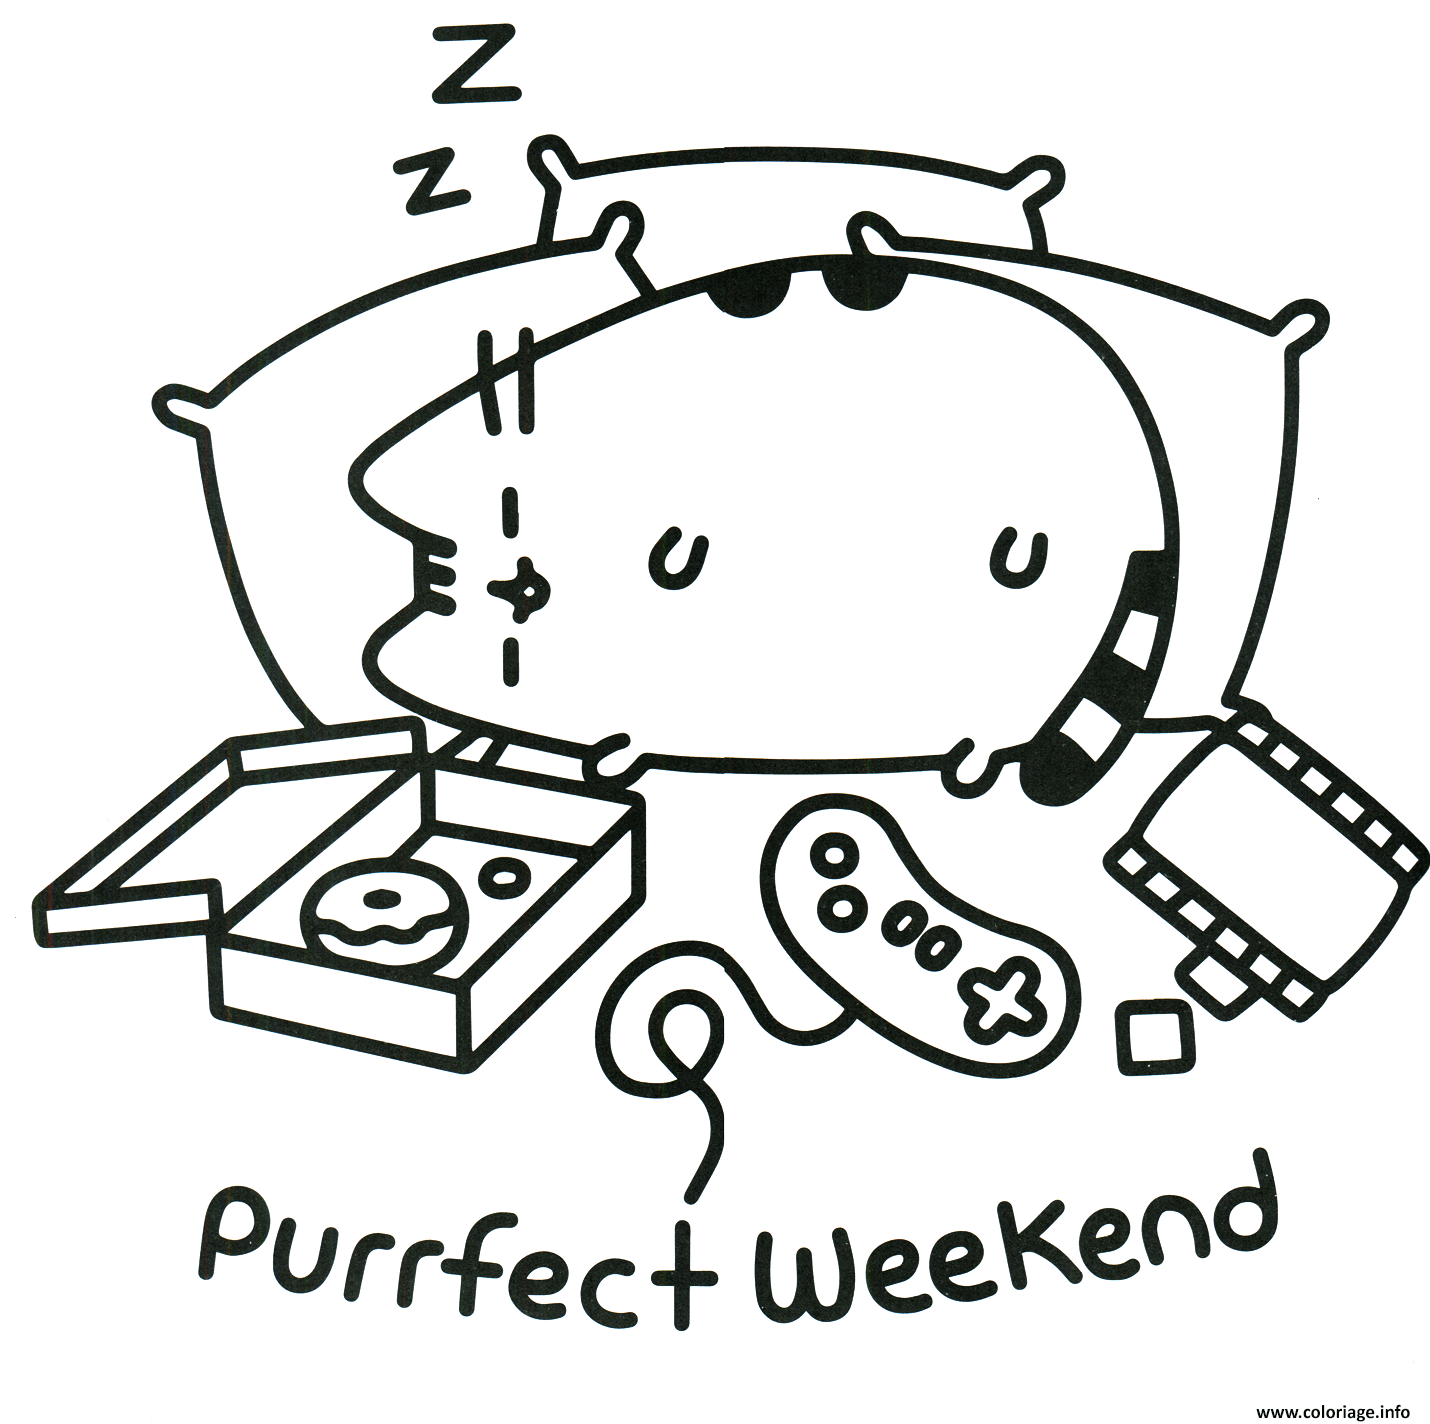 Coloriage Pusheen Perfect Weekend Dessin